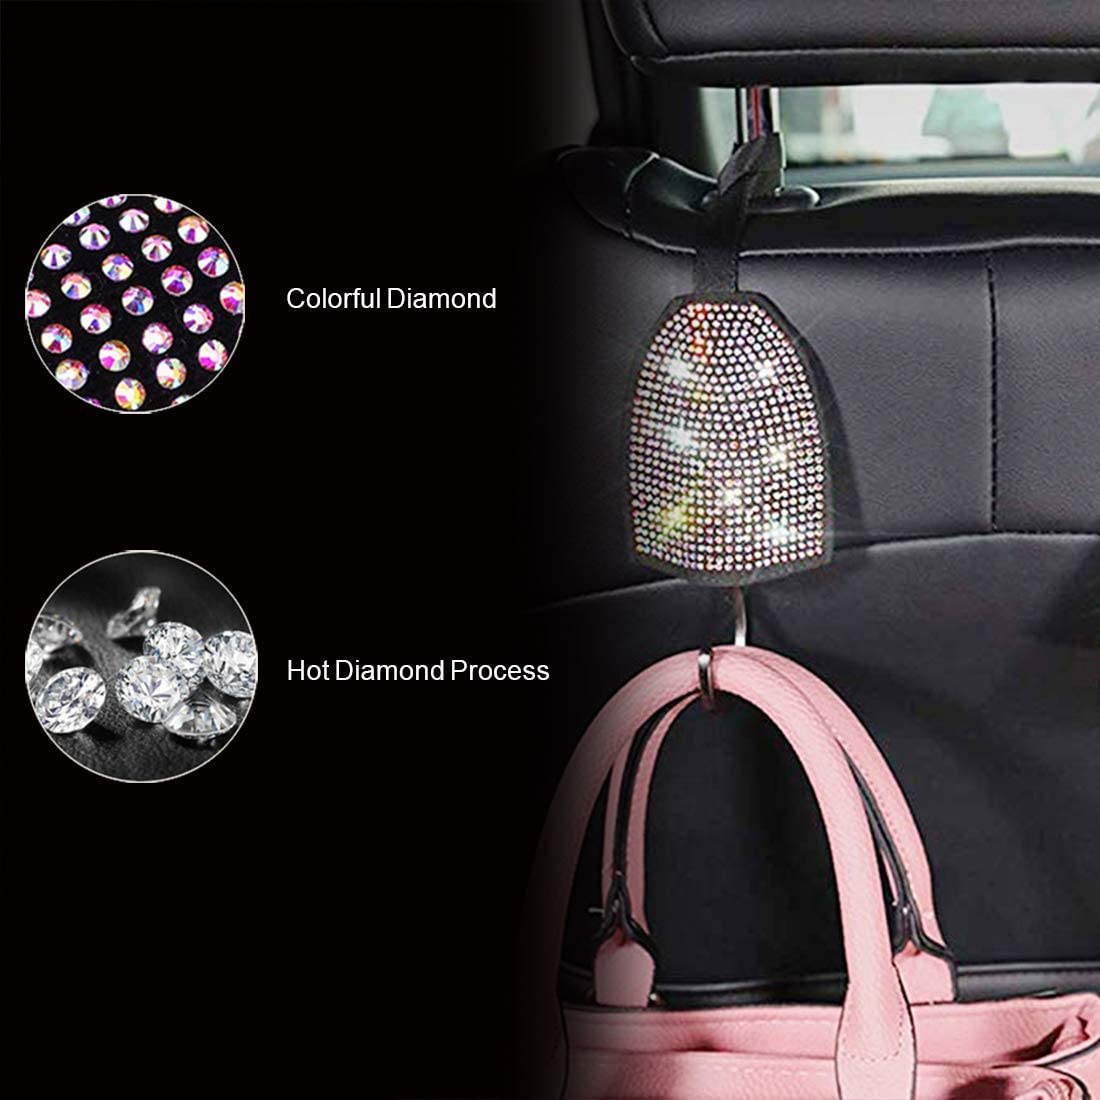 Diamond Colorful Crystal Soft Seat Belt Strap Shoulder Pads Decor Accessories for Women Girls 2 Packs Car Bling Bling Crystal Rhinestones Seatbelt Covers for Women Adults Girl HJD